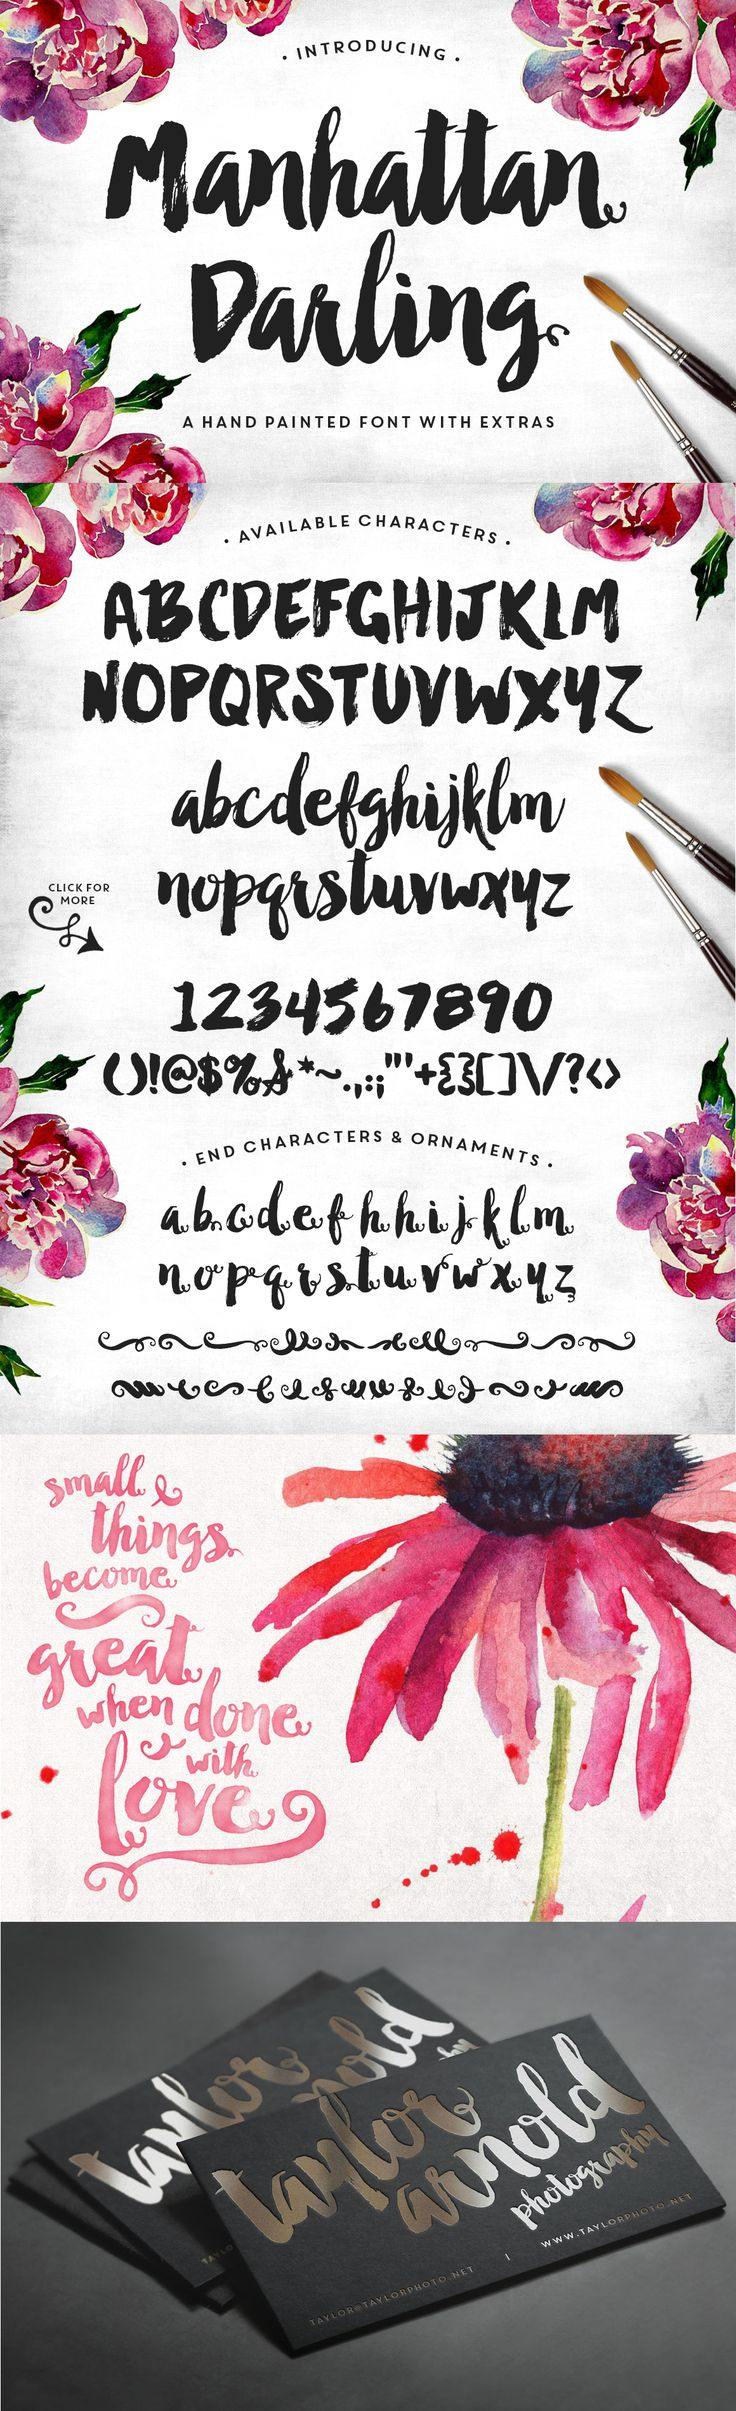 Manhattan Darling Typeface + BONUS by MakeMediaCo. on Creative Market